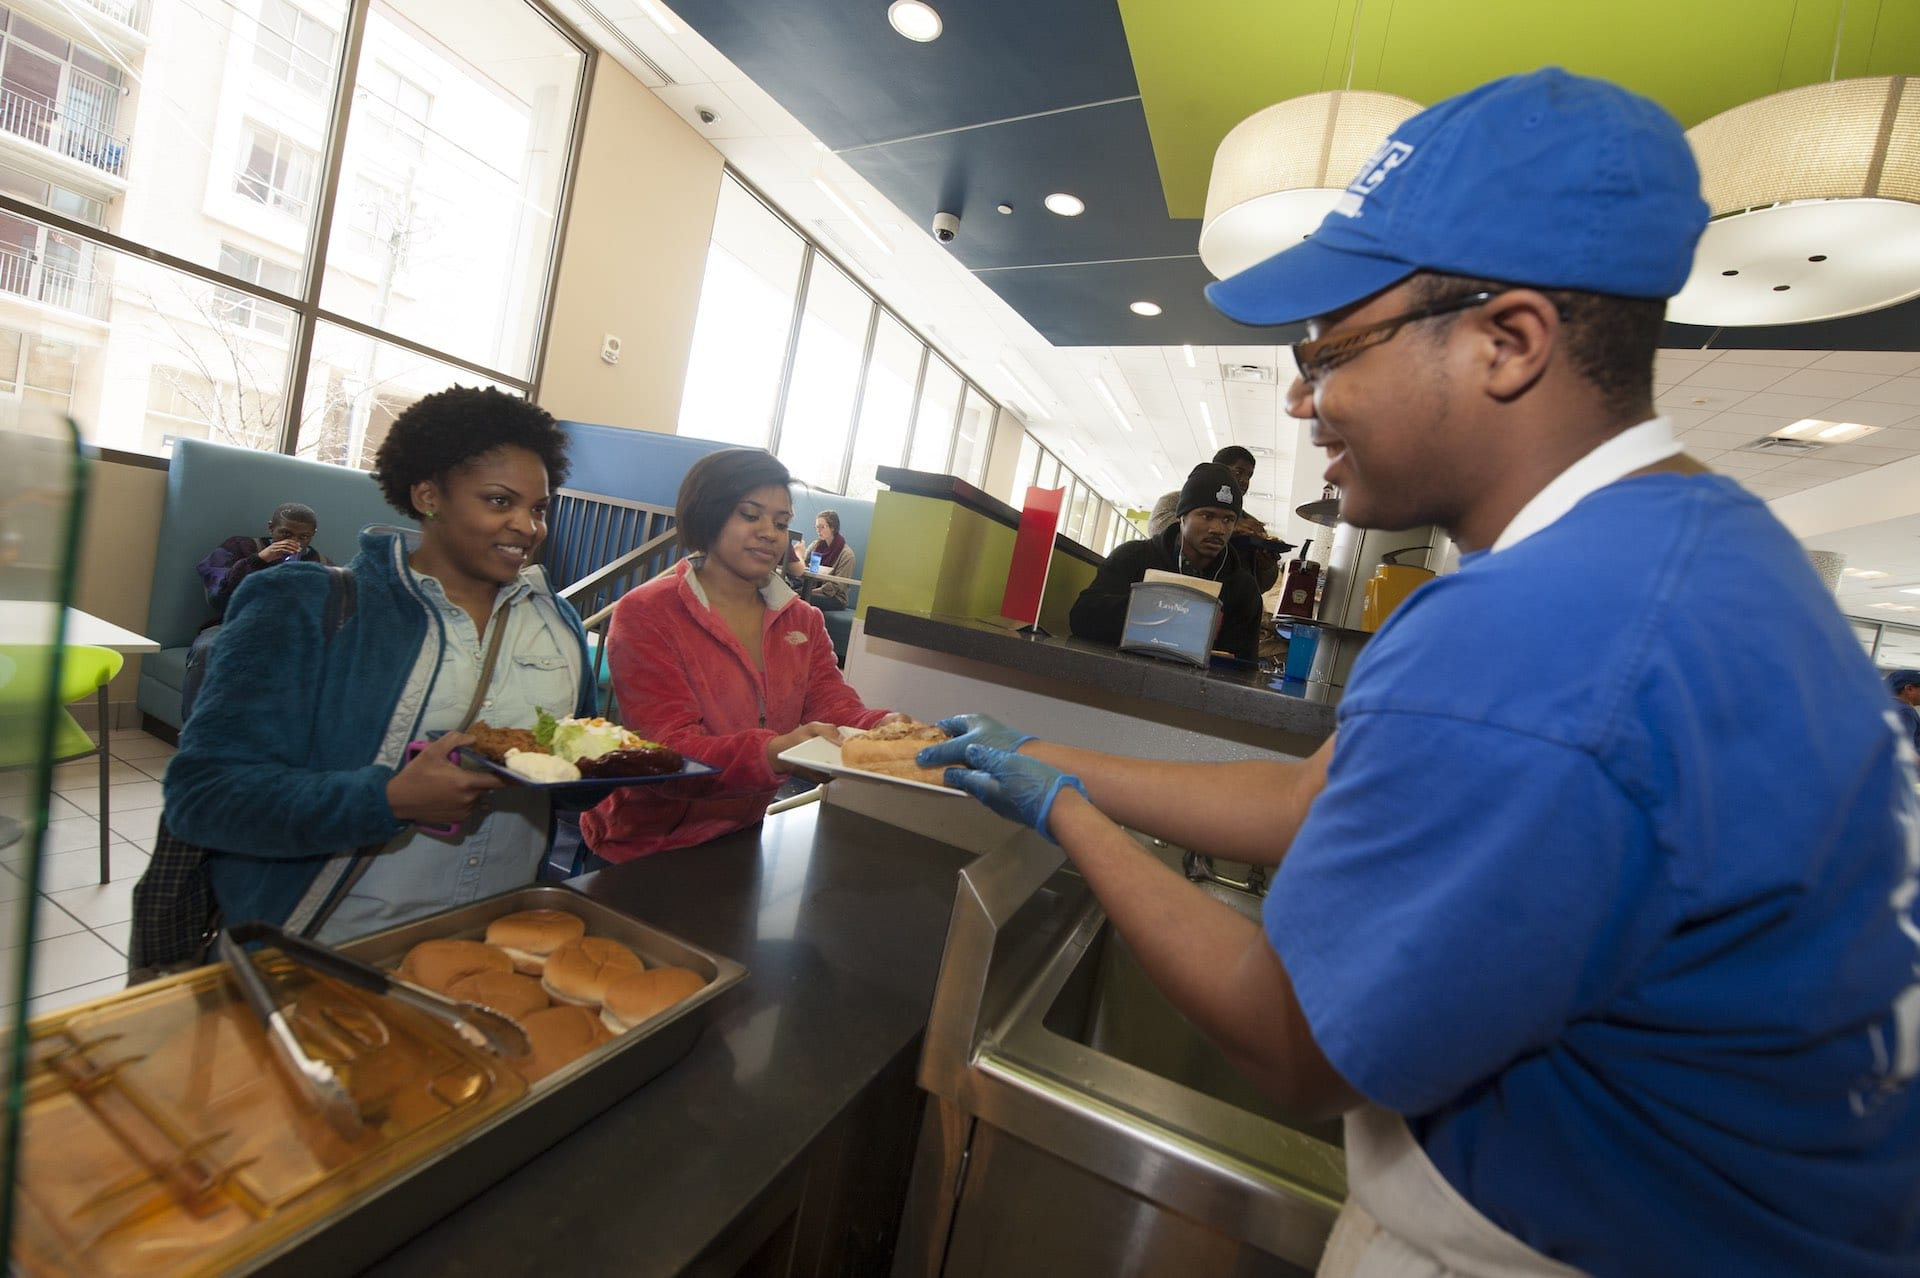 Dining hall staff serving food to students